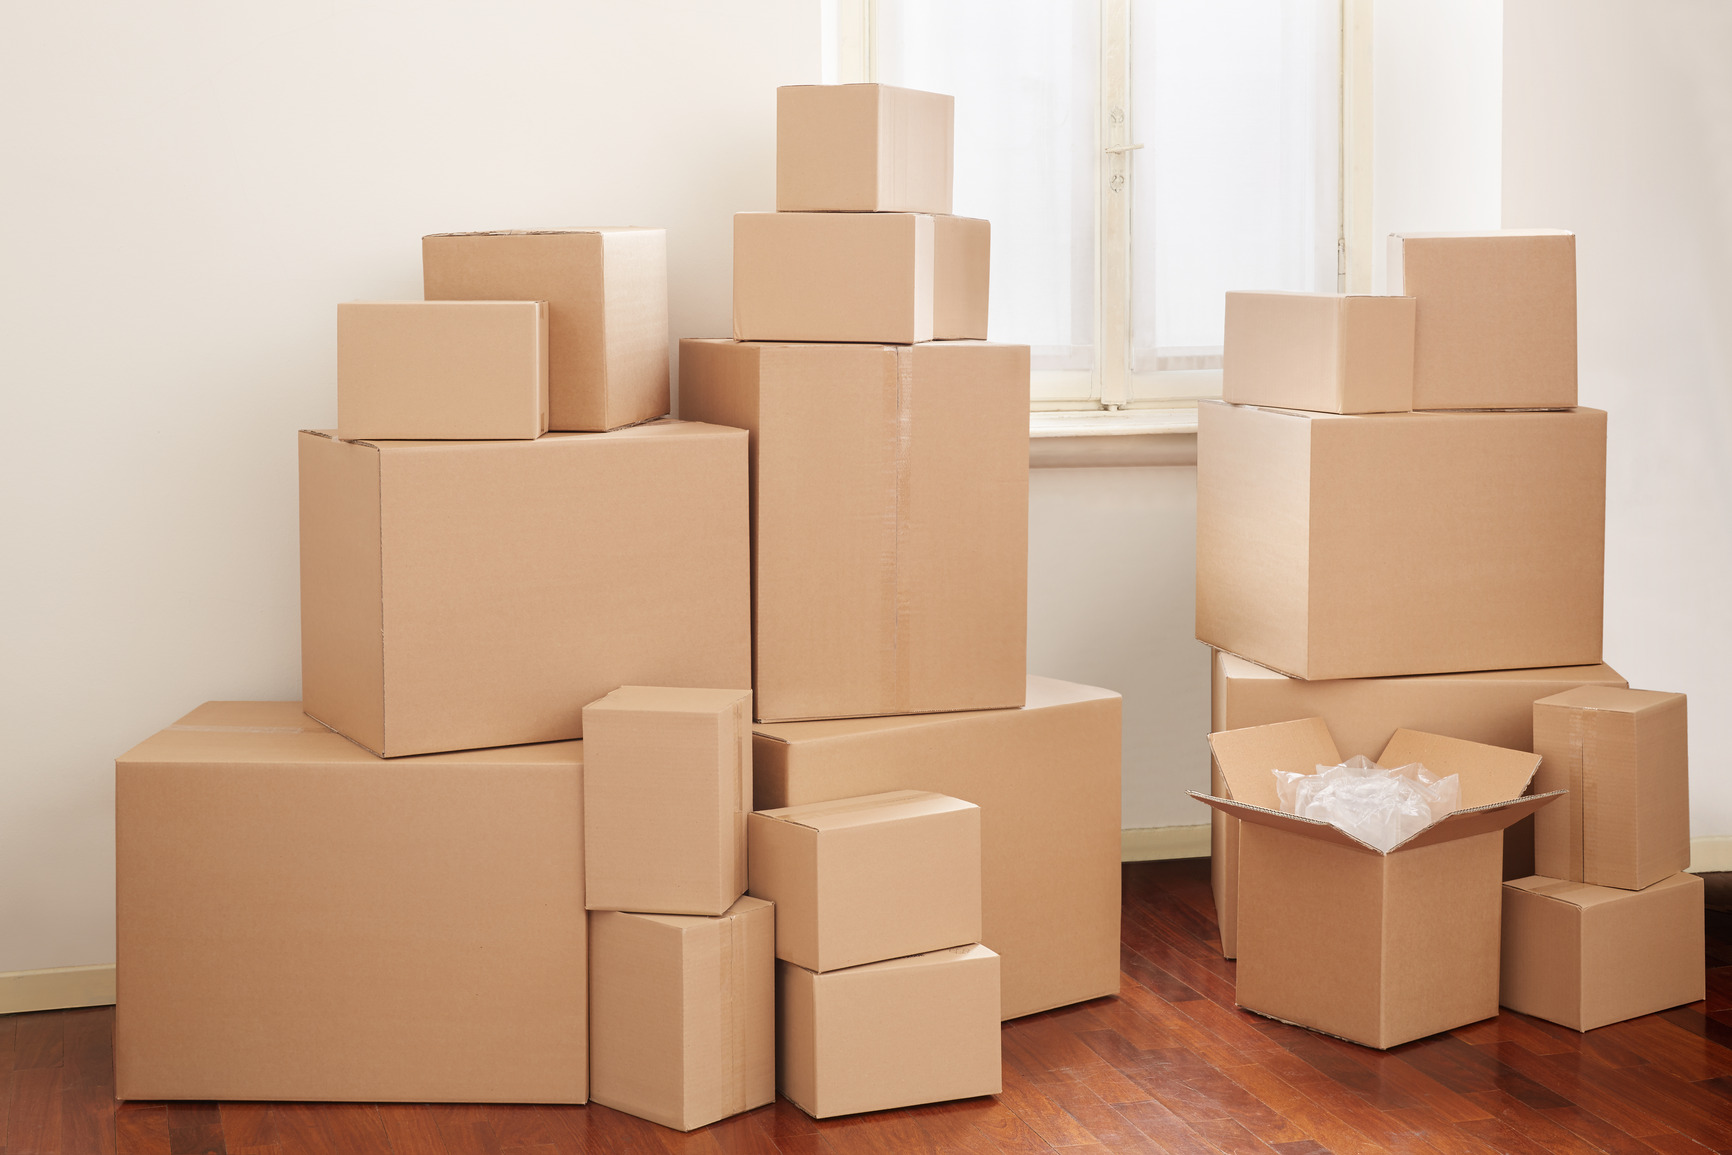 Furniture Moving Supplies and a Good Packing System Ease the Moving Transition